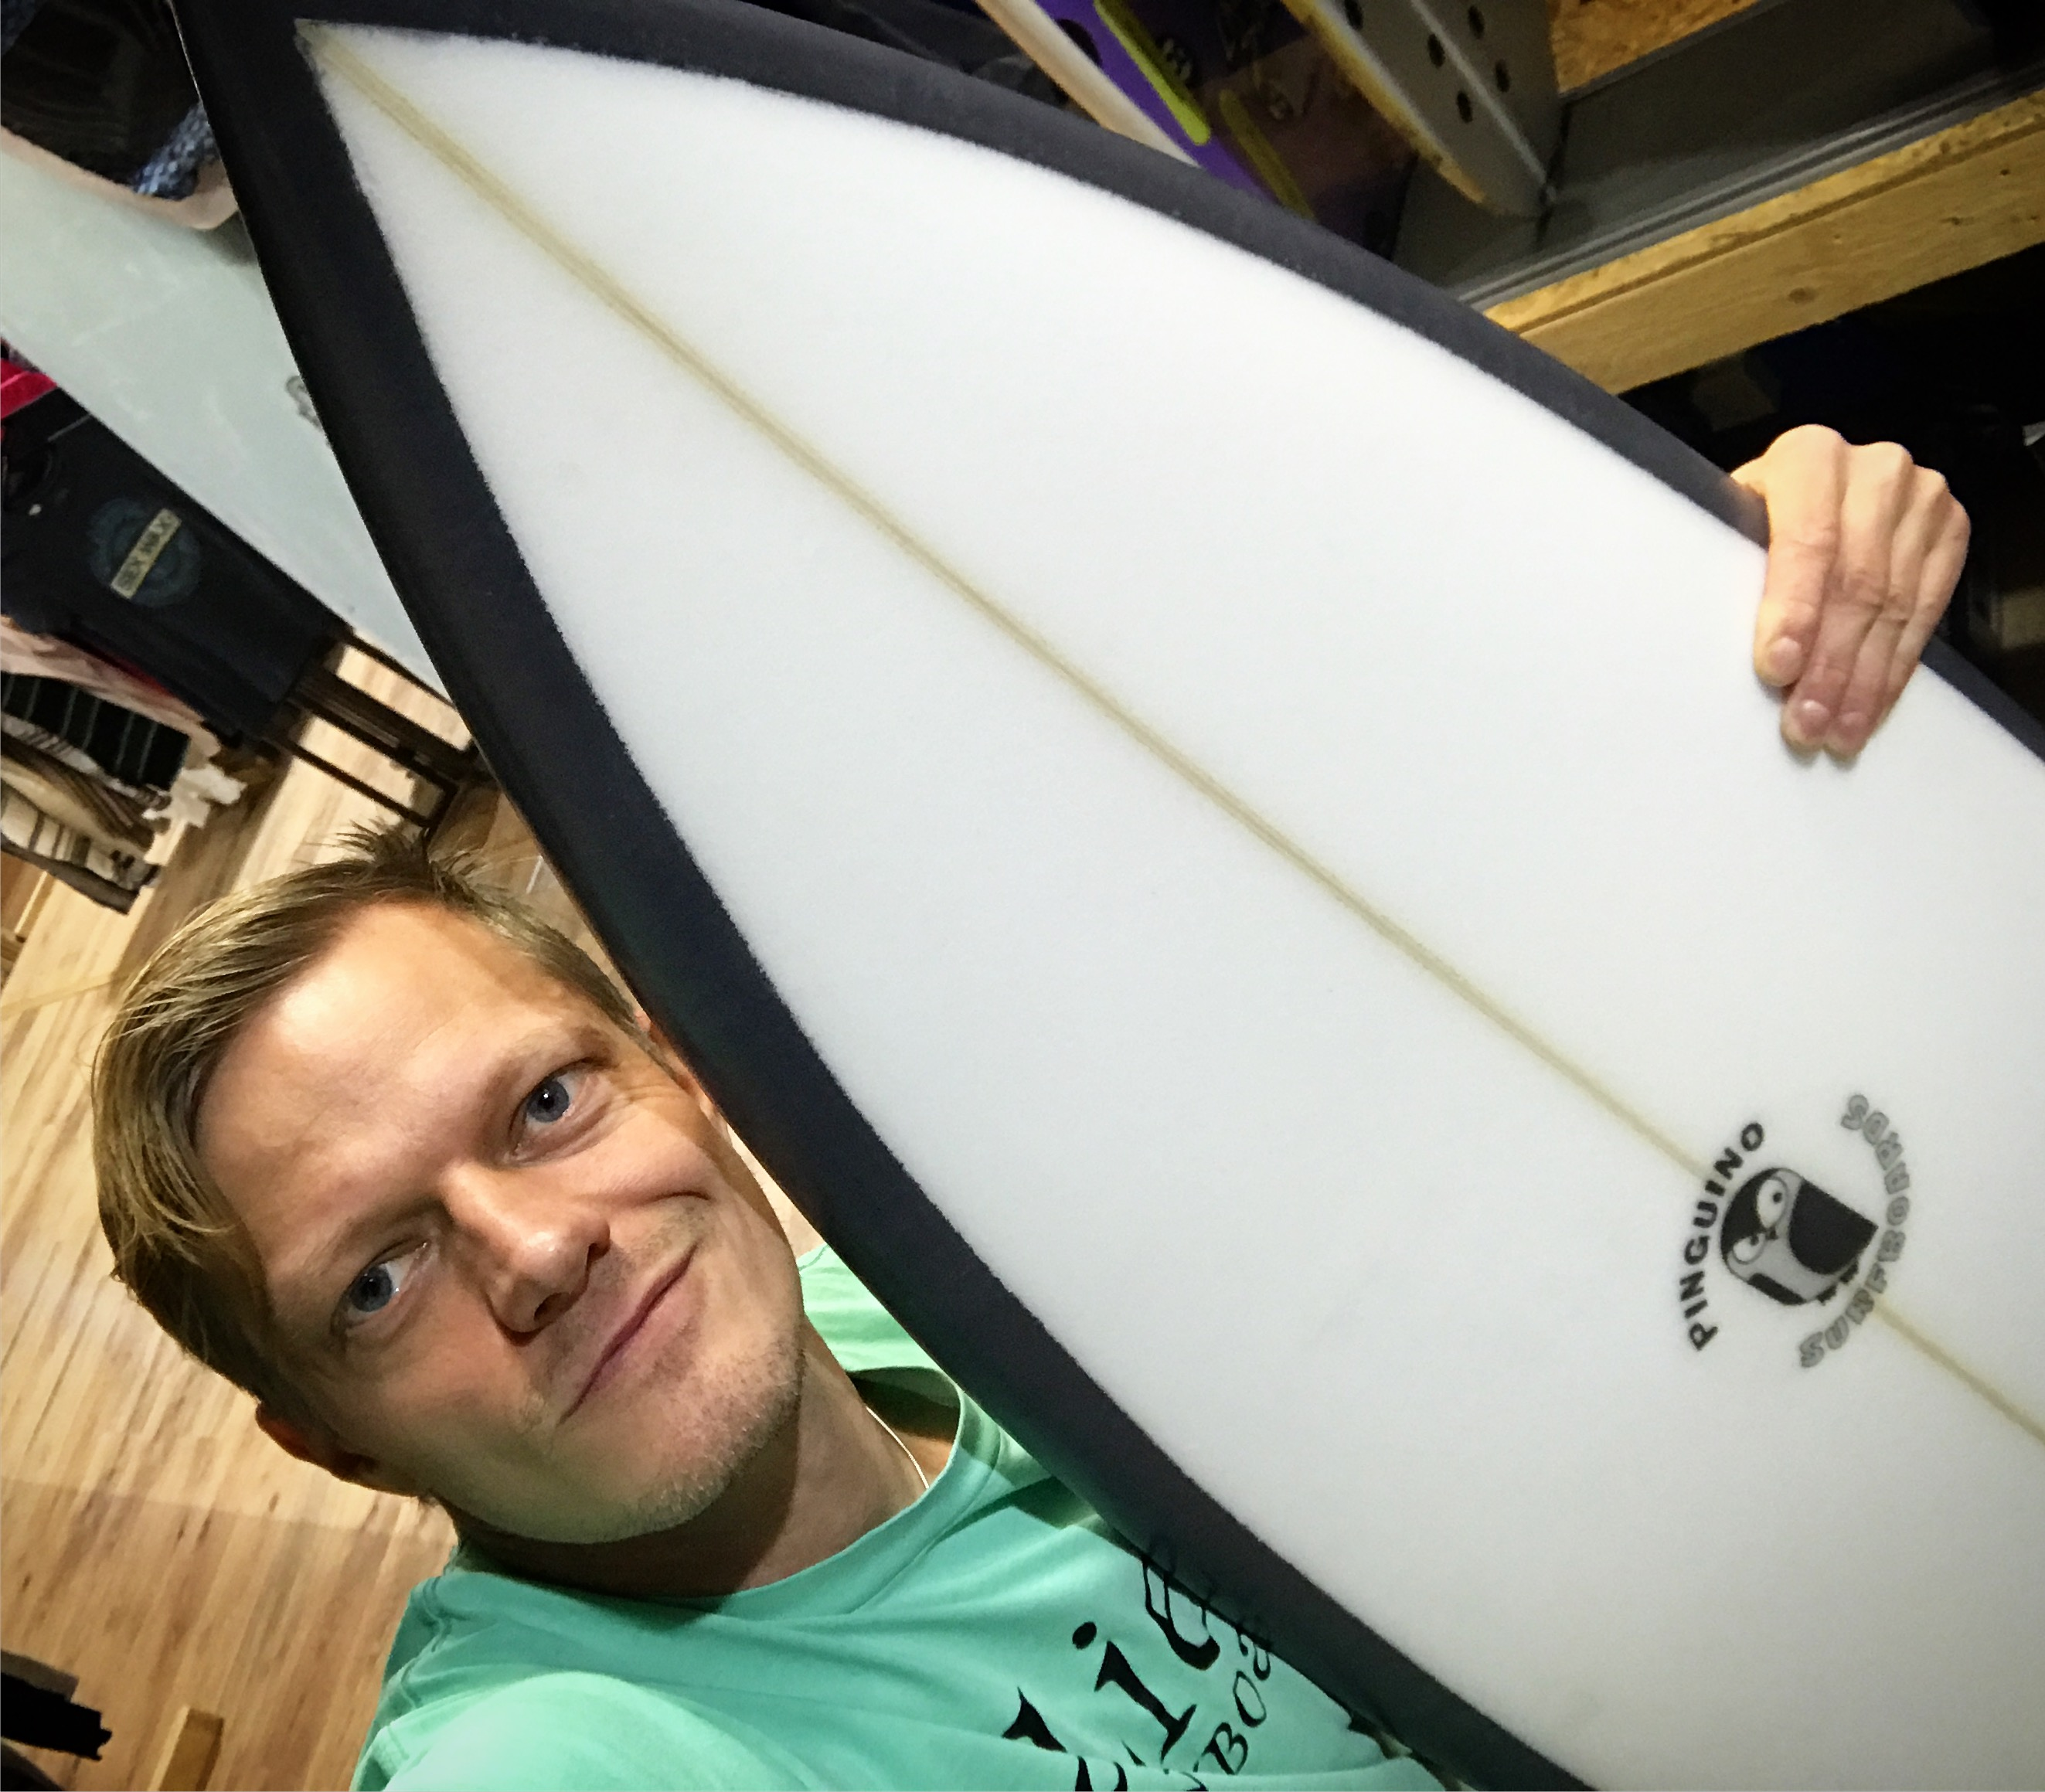 Surfing Trip to Bali - Pinguino Surfboards - Screw Them All